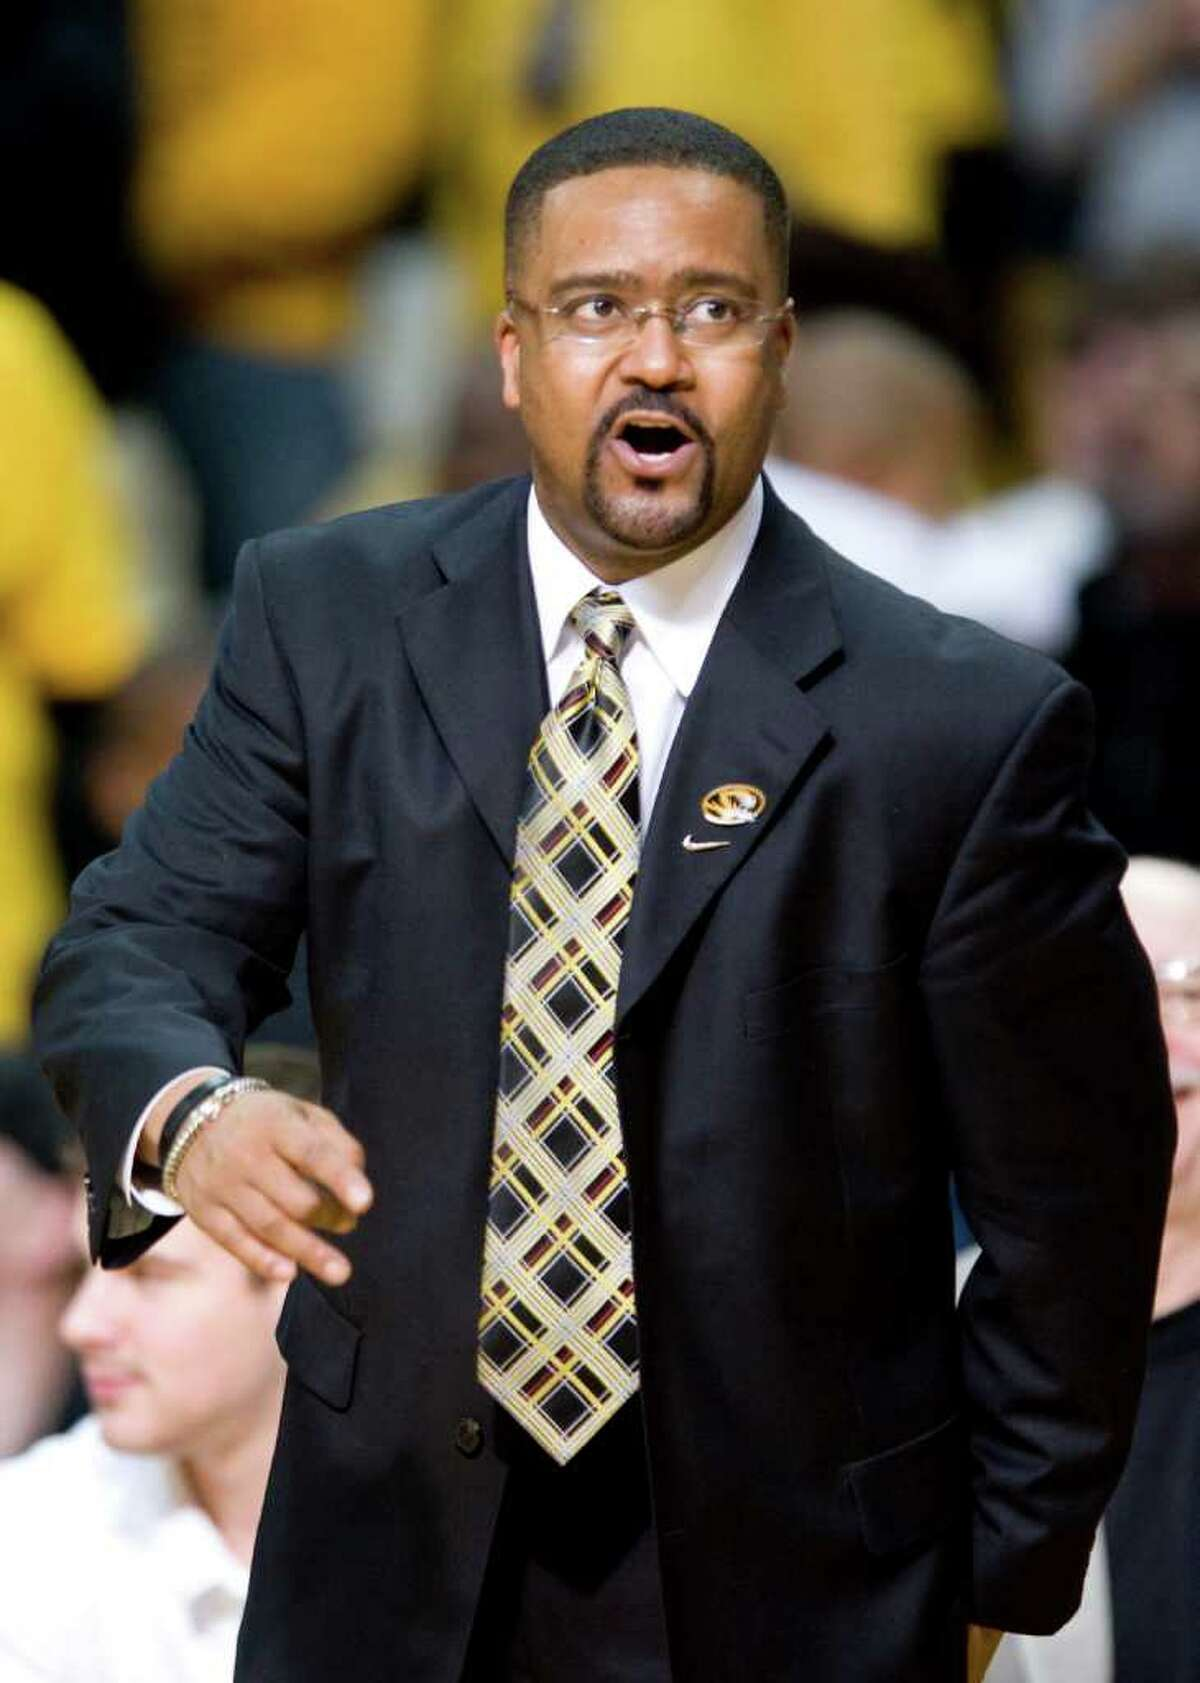 Missouri head coach Frank Haith discusses a call with a referee during the second half of an NCAA college basketball game against Baylor Saturday, Feb. 11, 2012, in Columbia, Mo. Missouri won the game 72-57.